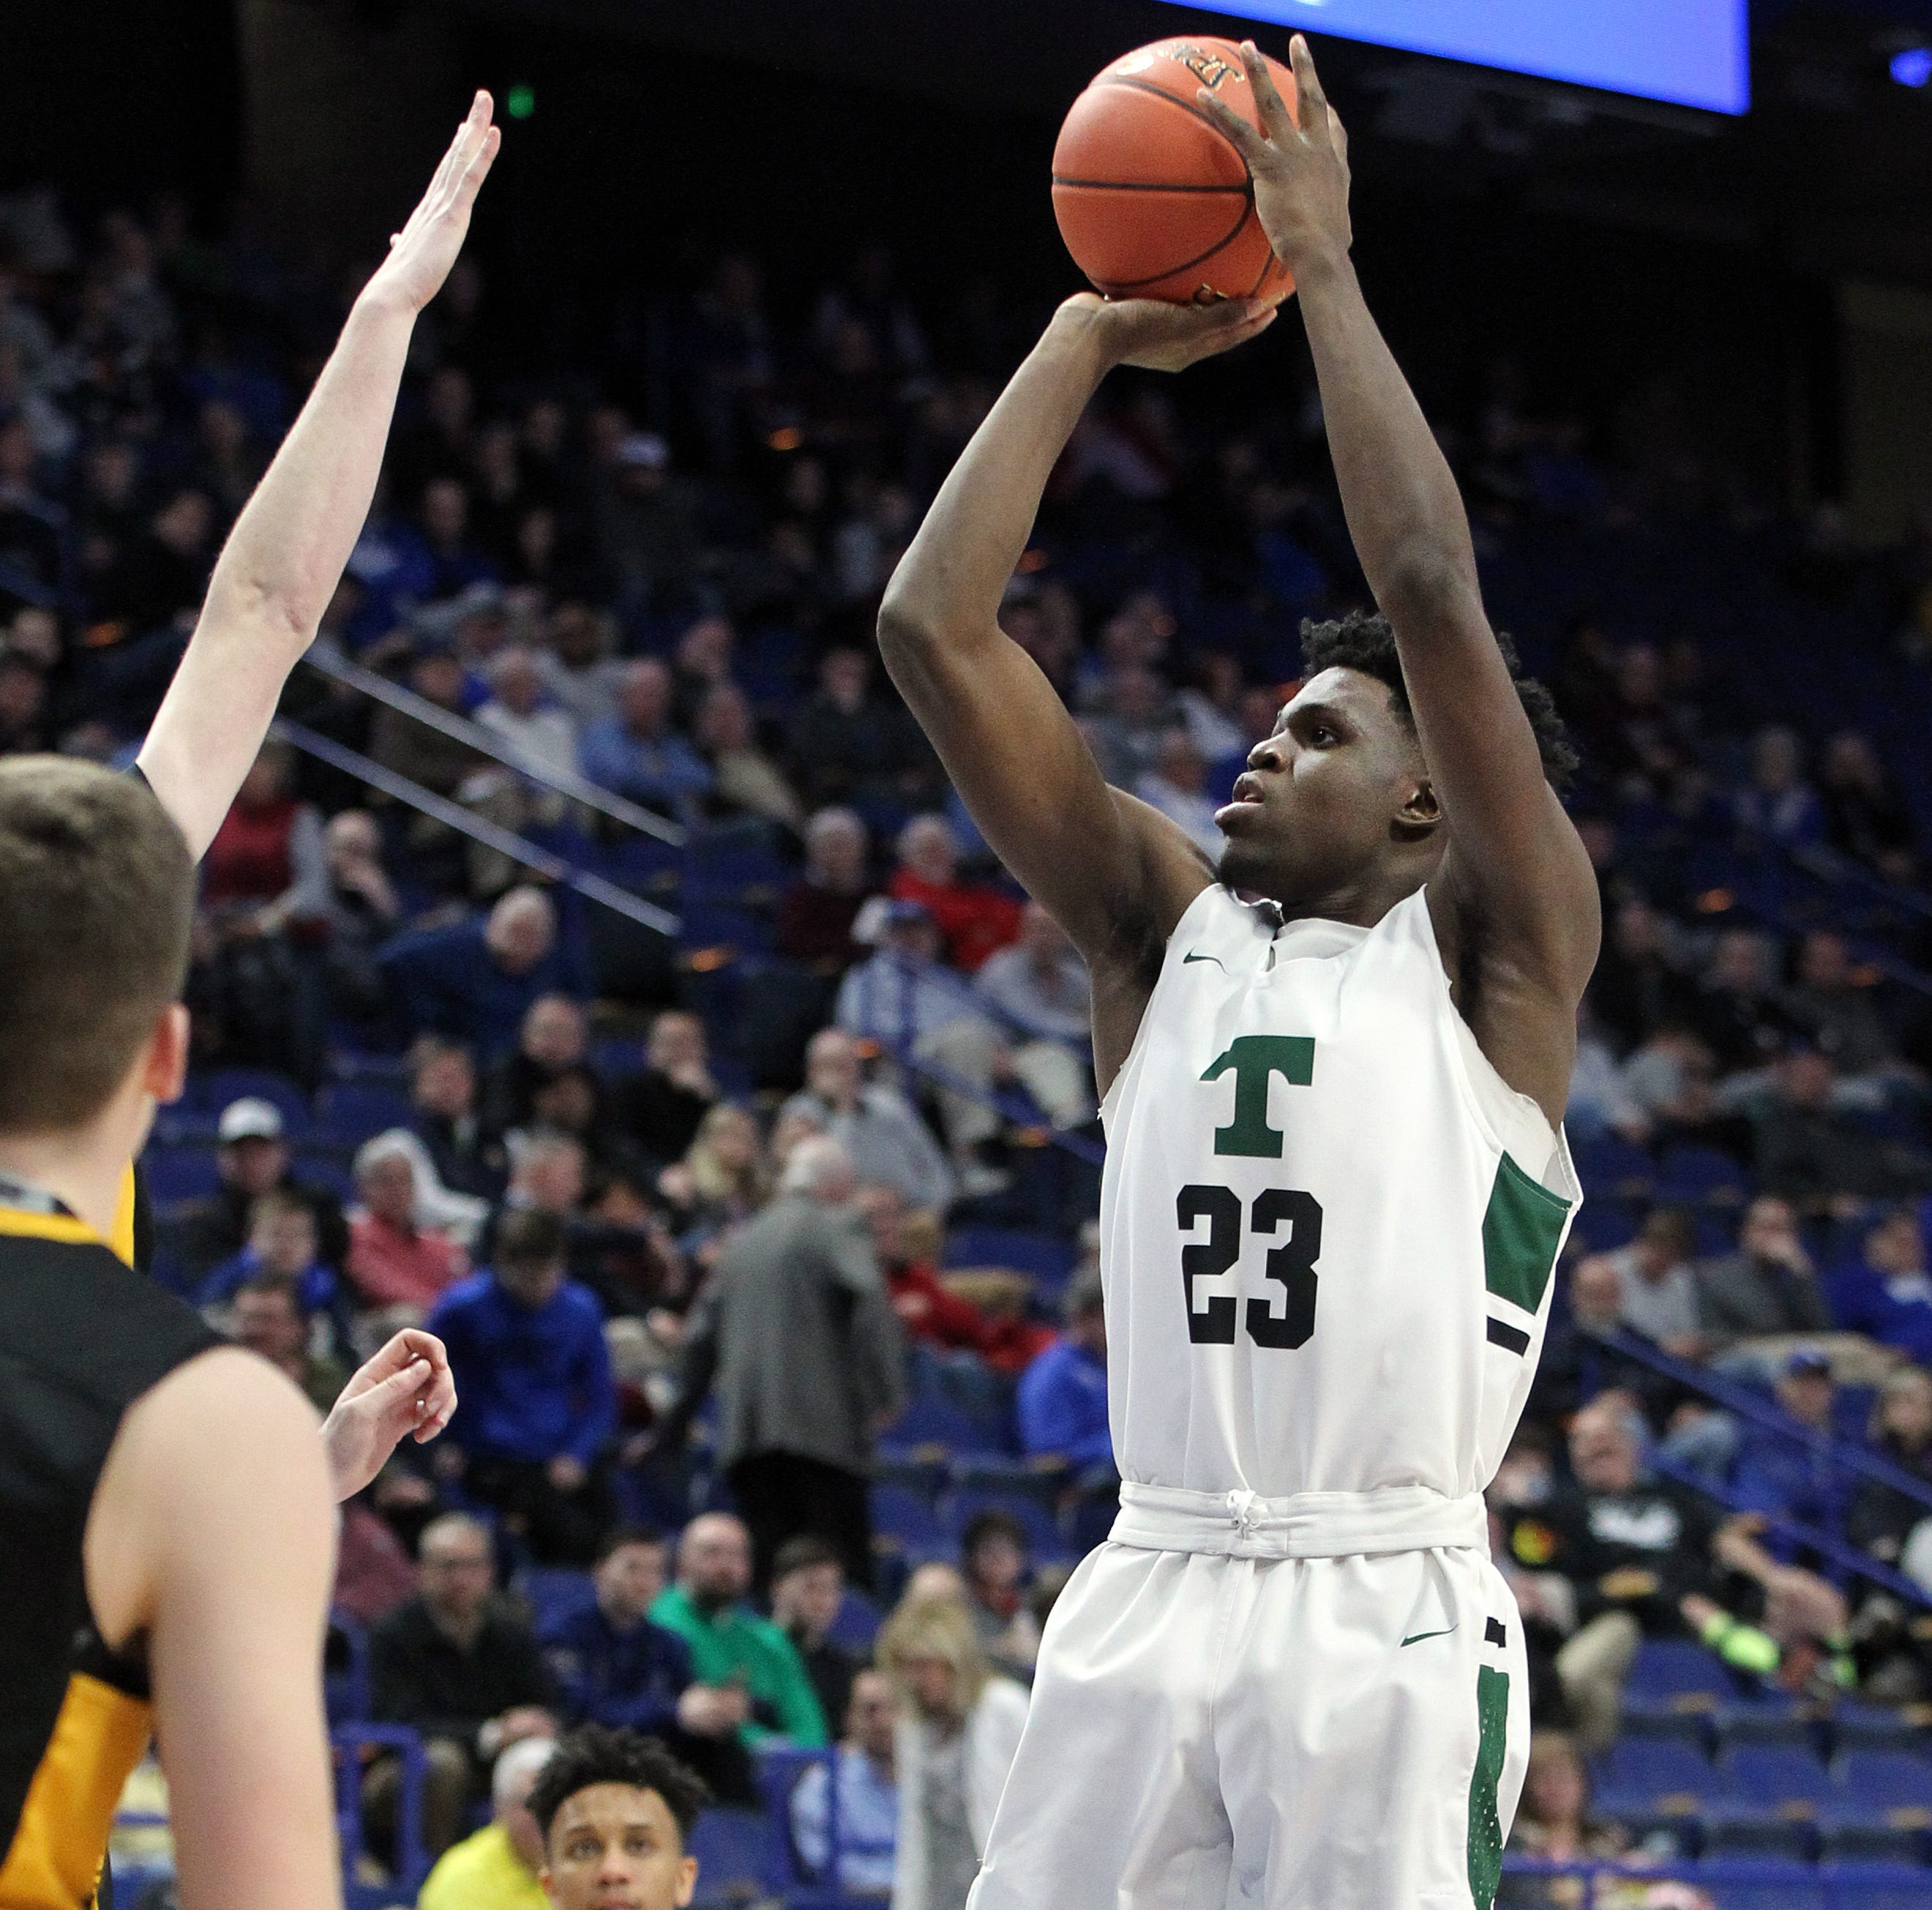 Trinity looks like a contender in Sweet 16 blowout vs. Johnson Central